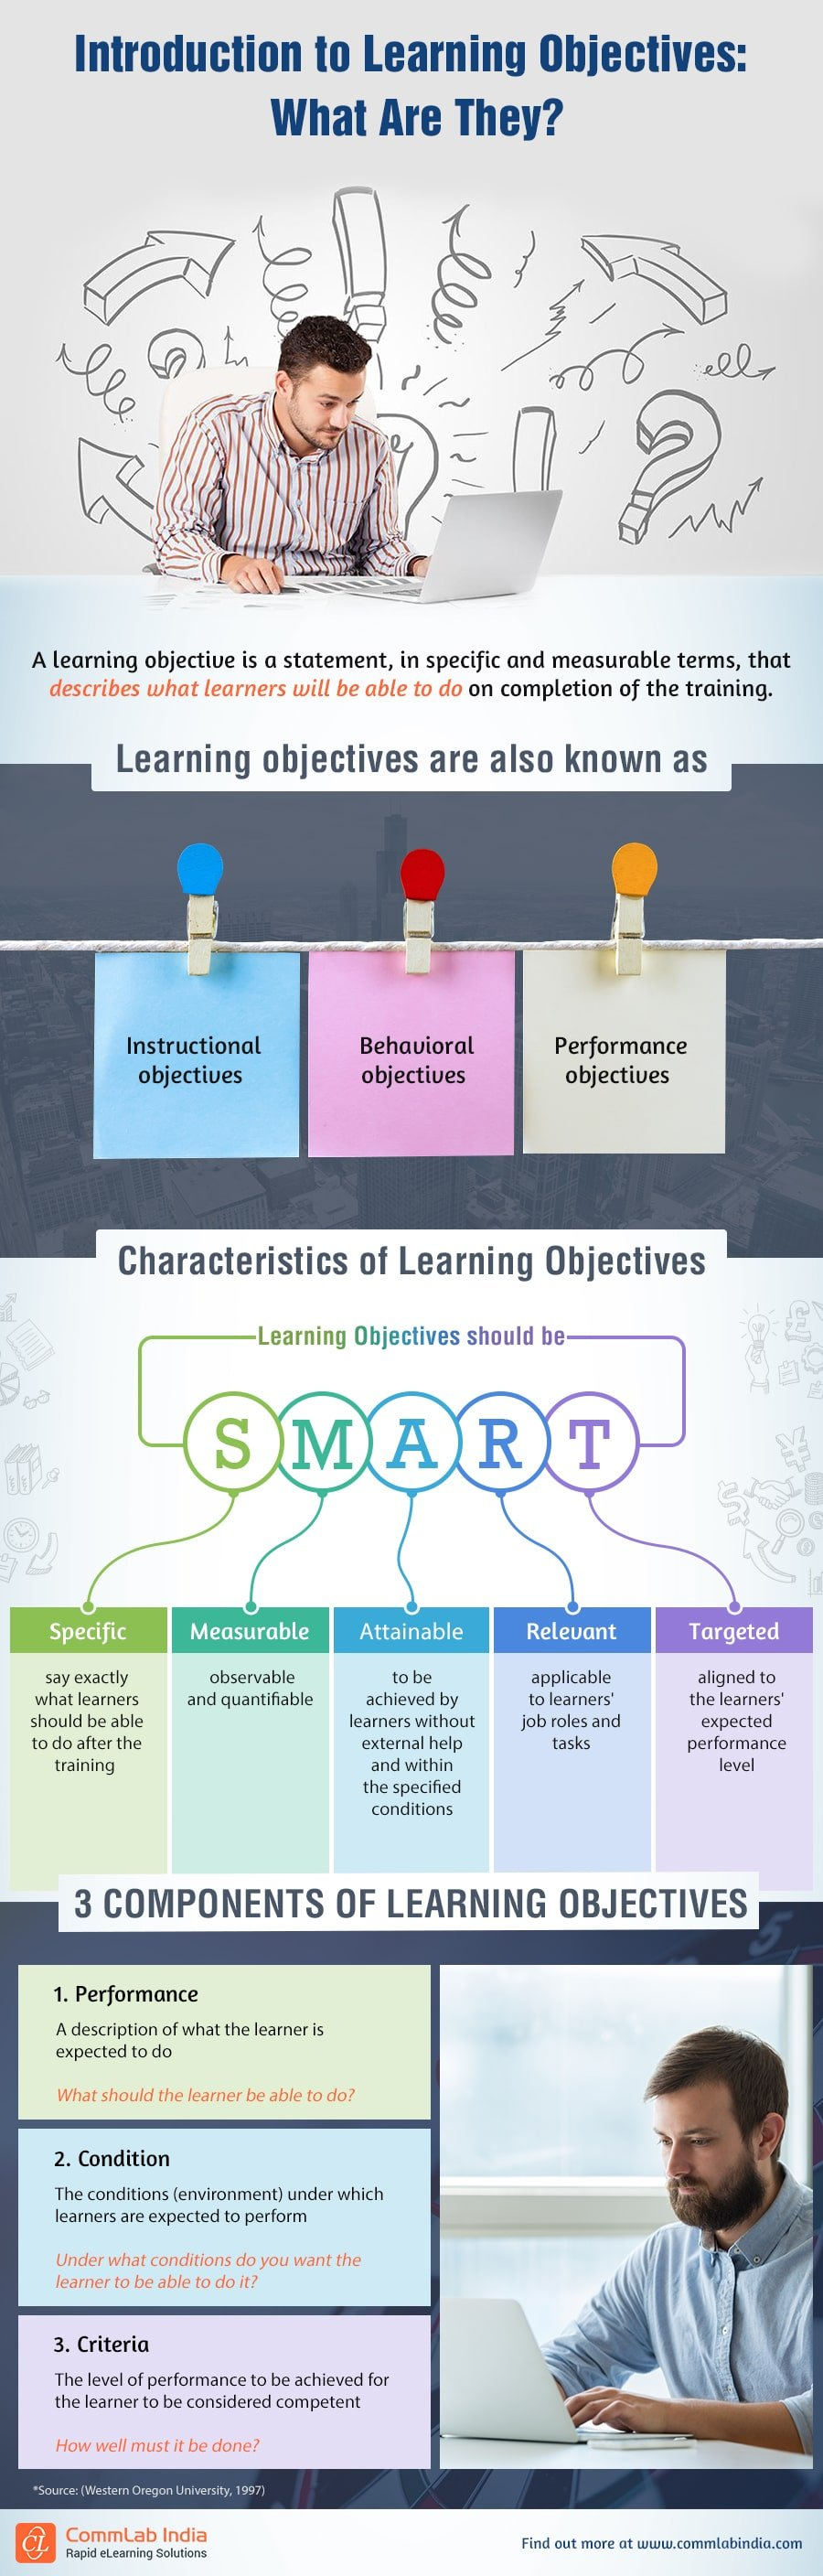 Learning Objectives: Let's Get to Know Them Better!